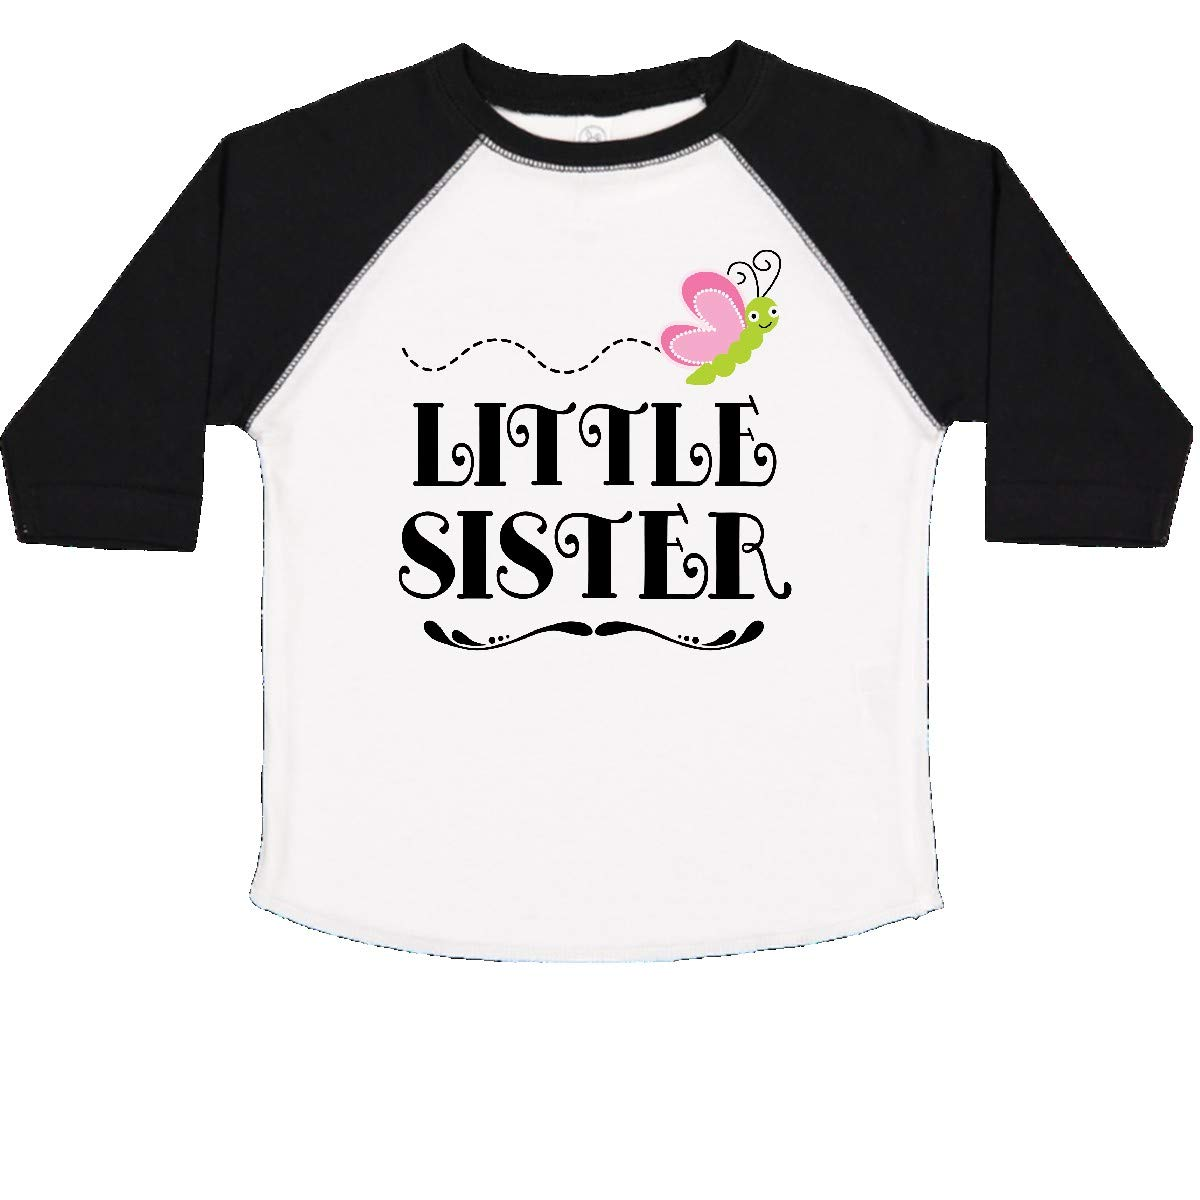 inktastic Little Sister Outfit for Girls Toddler T-Shirt